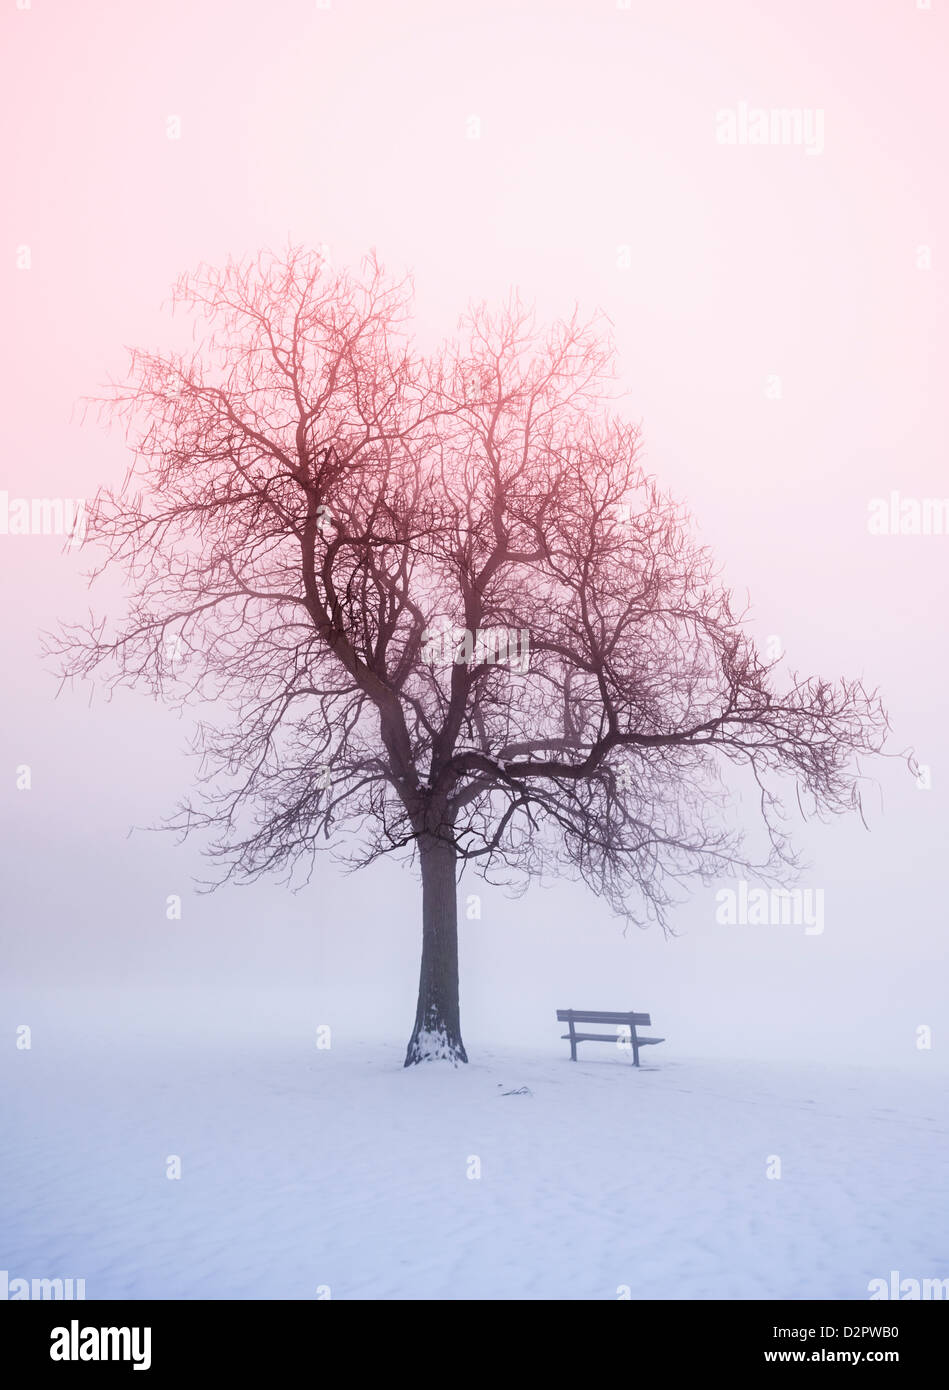 Foggy winter sunrise scene with leafless tree and park bench - Stock Image